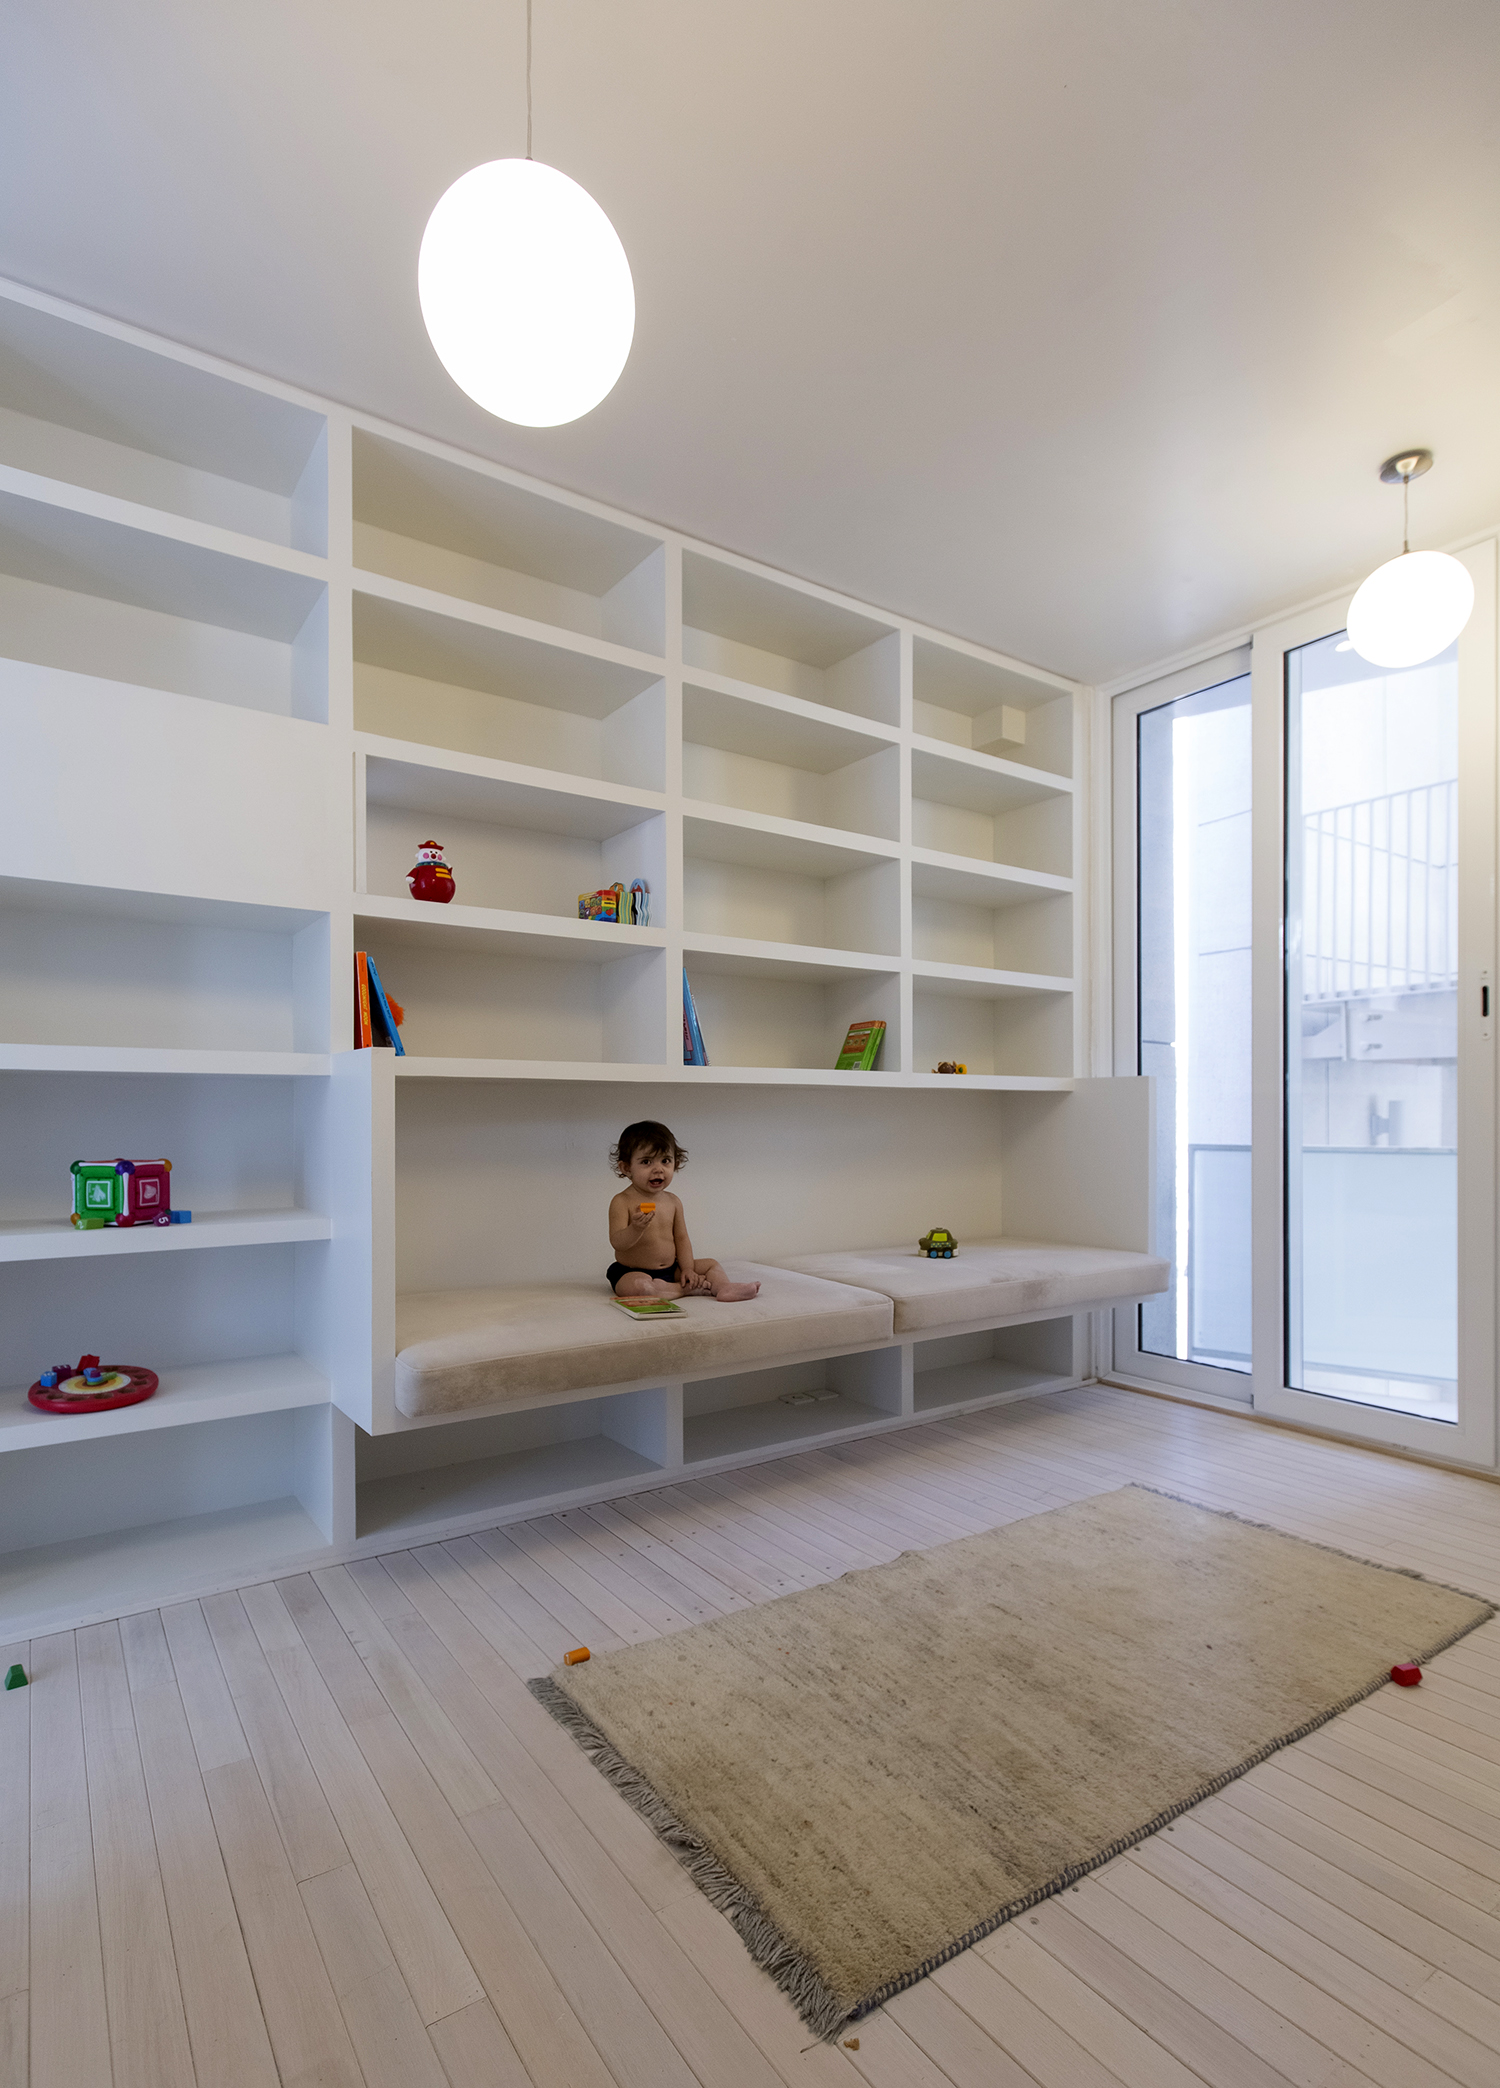 Interior View Of The Kids Bedroom On The Third Floor Illustrating